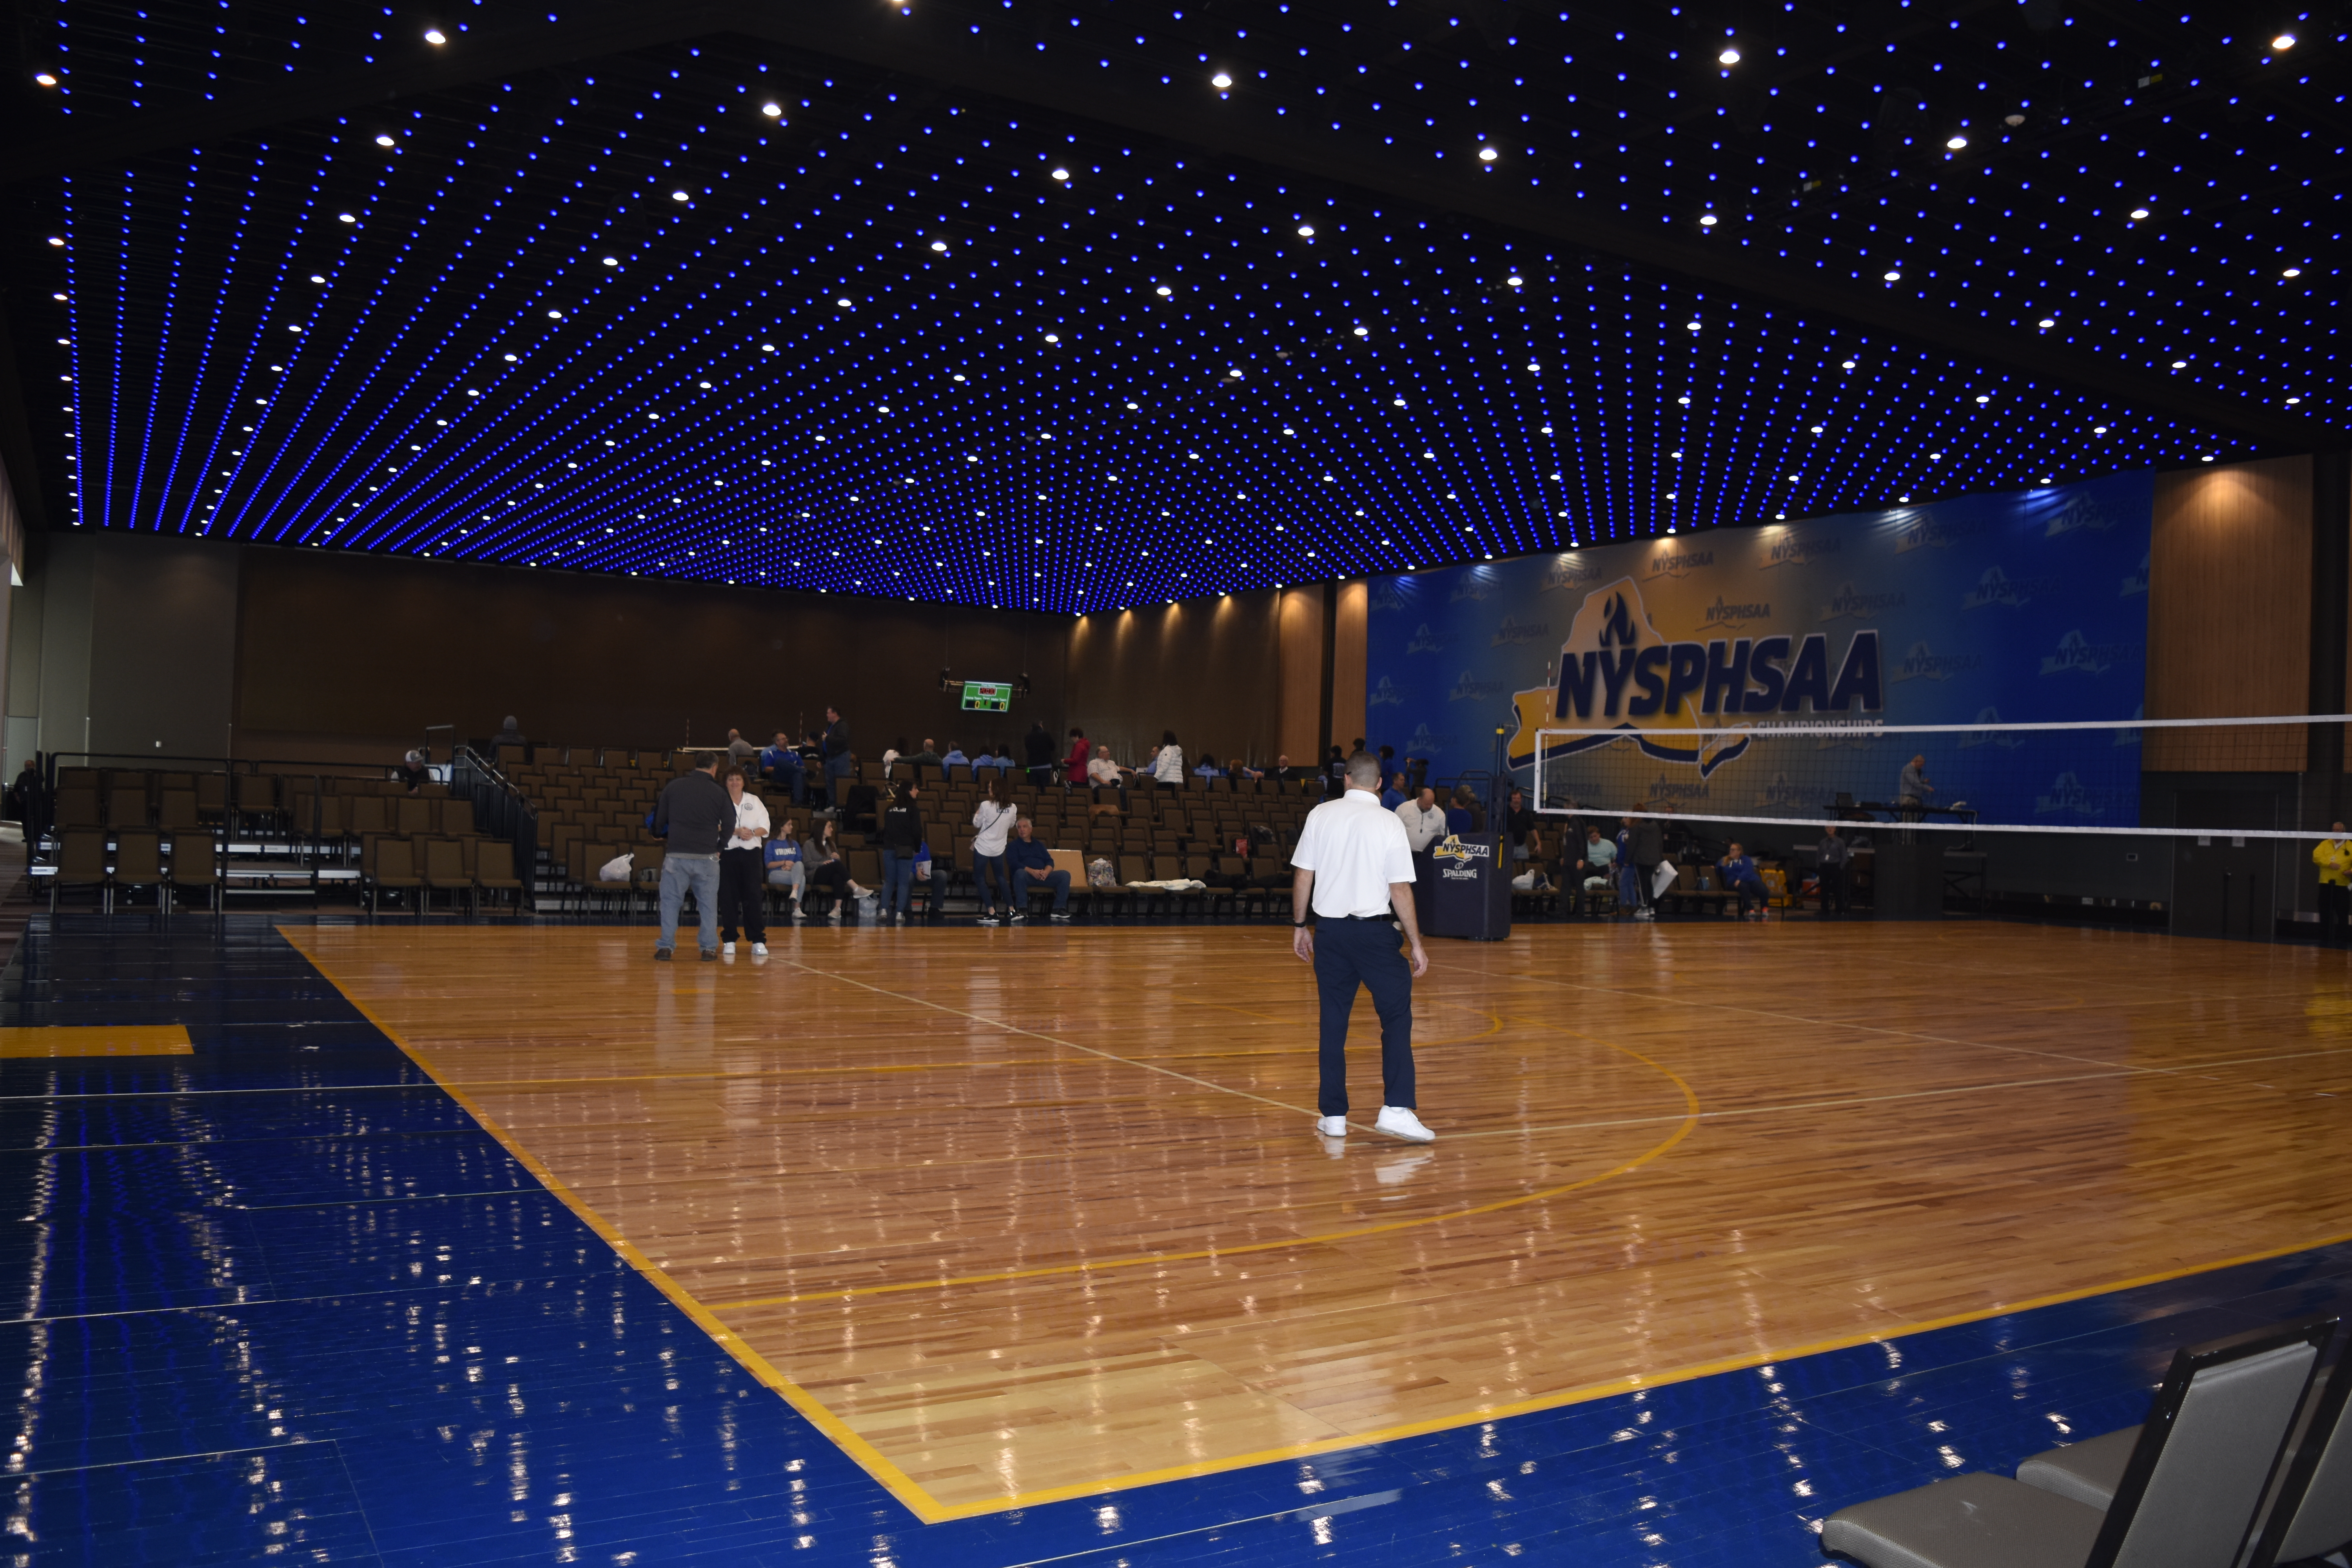 The Albany Capital Center, just built in 2017, was the site of this year's New York State Boys Volleyball Championships.